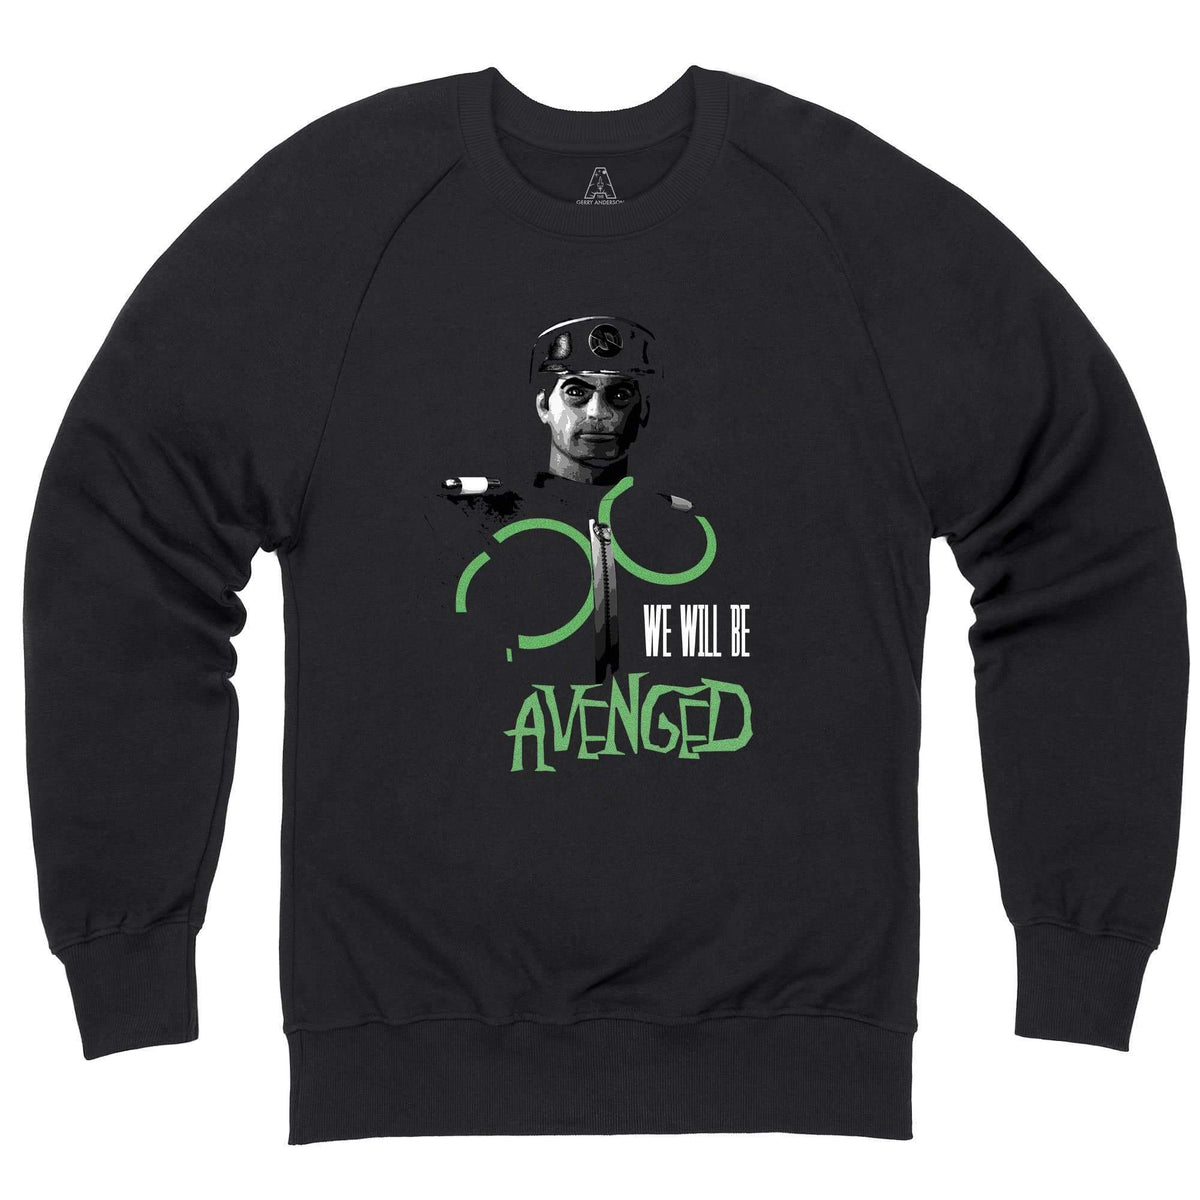 New Captain Scarlet Avenged Sweatshirt [Official & Exclusive] - The Gerry Anderson Store